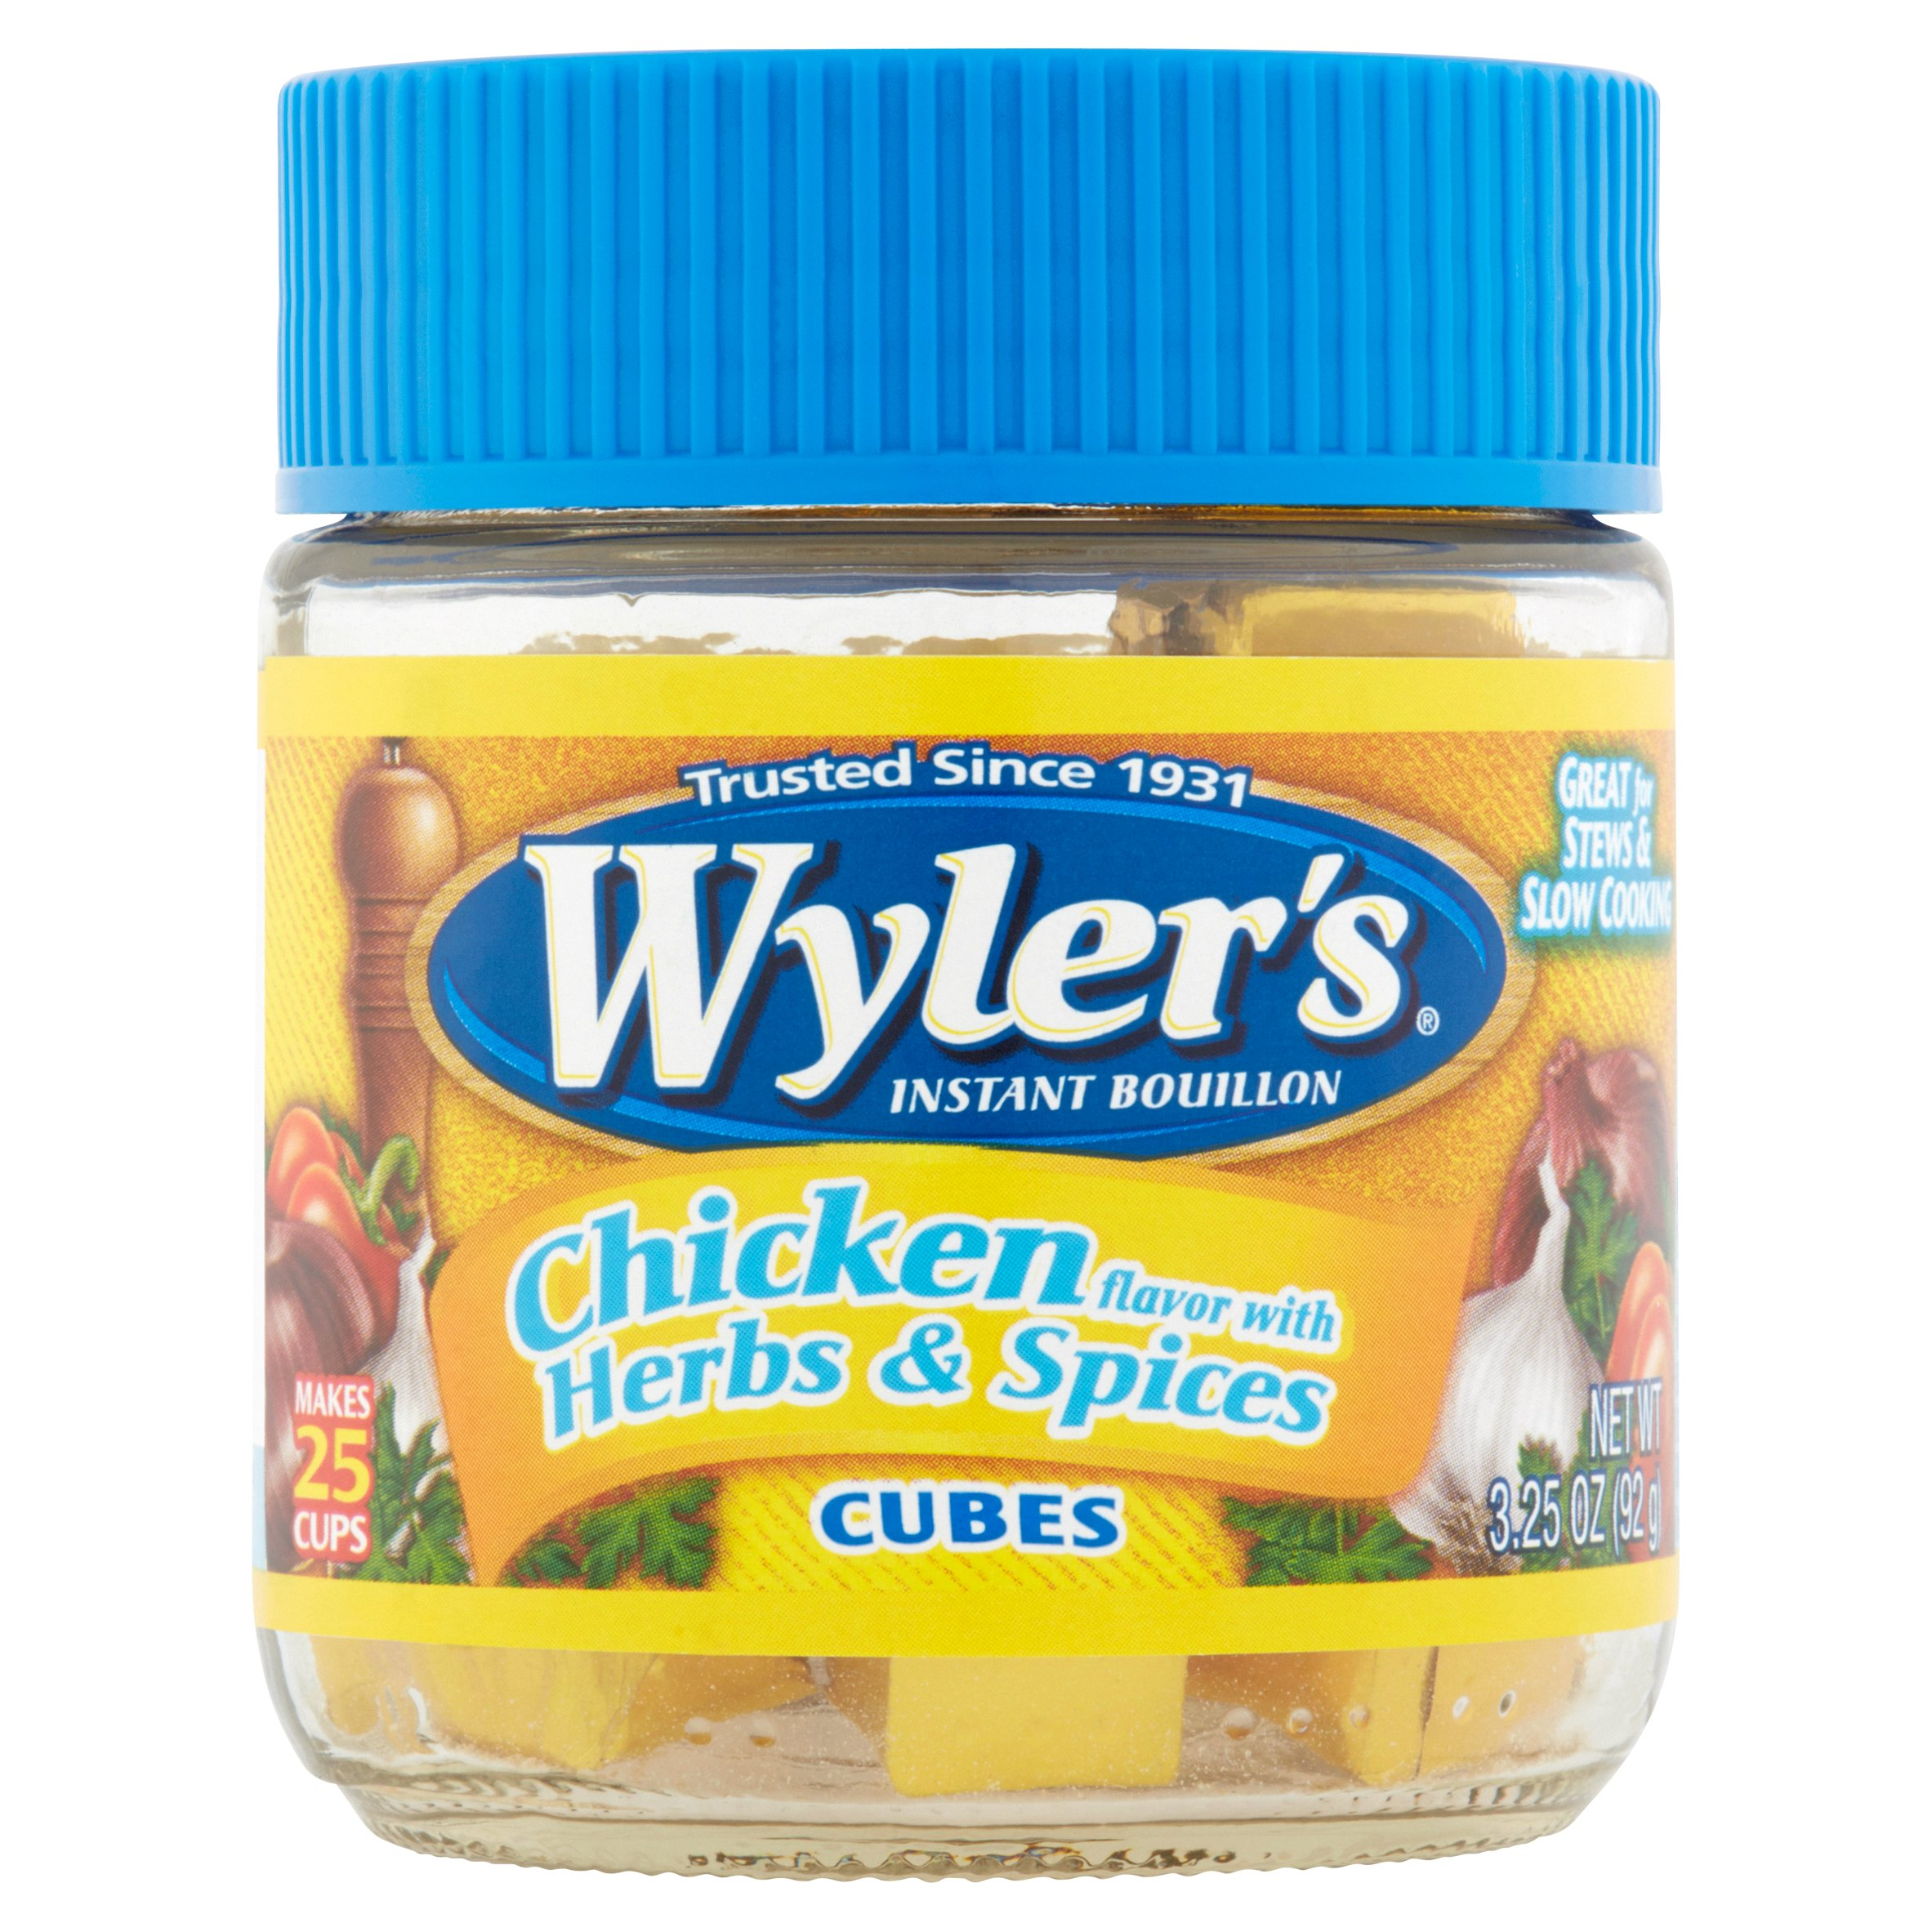 Wyler's Instant Bouillon Chicken Herbs & Spices Cubes, 2 Oz by Heinz North America